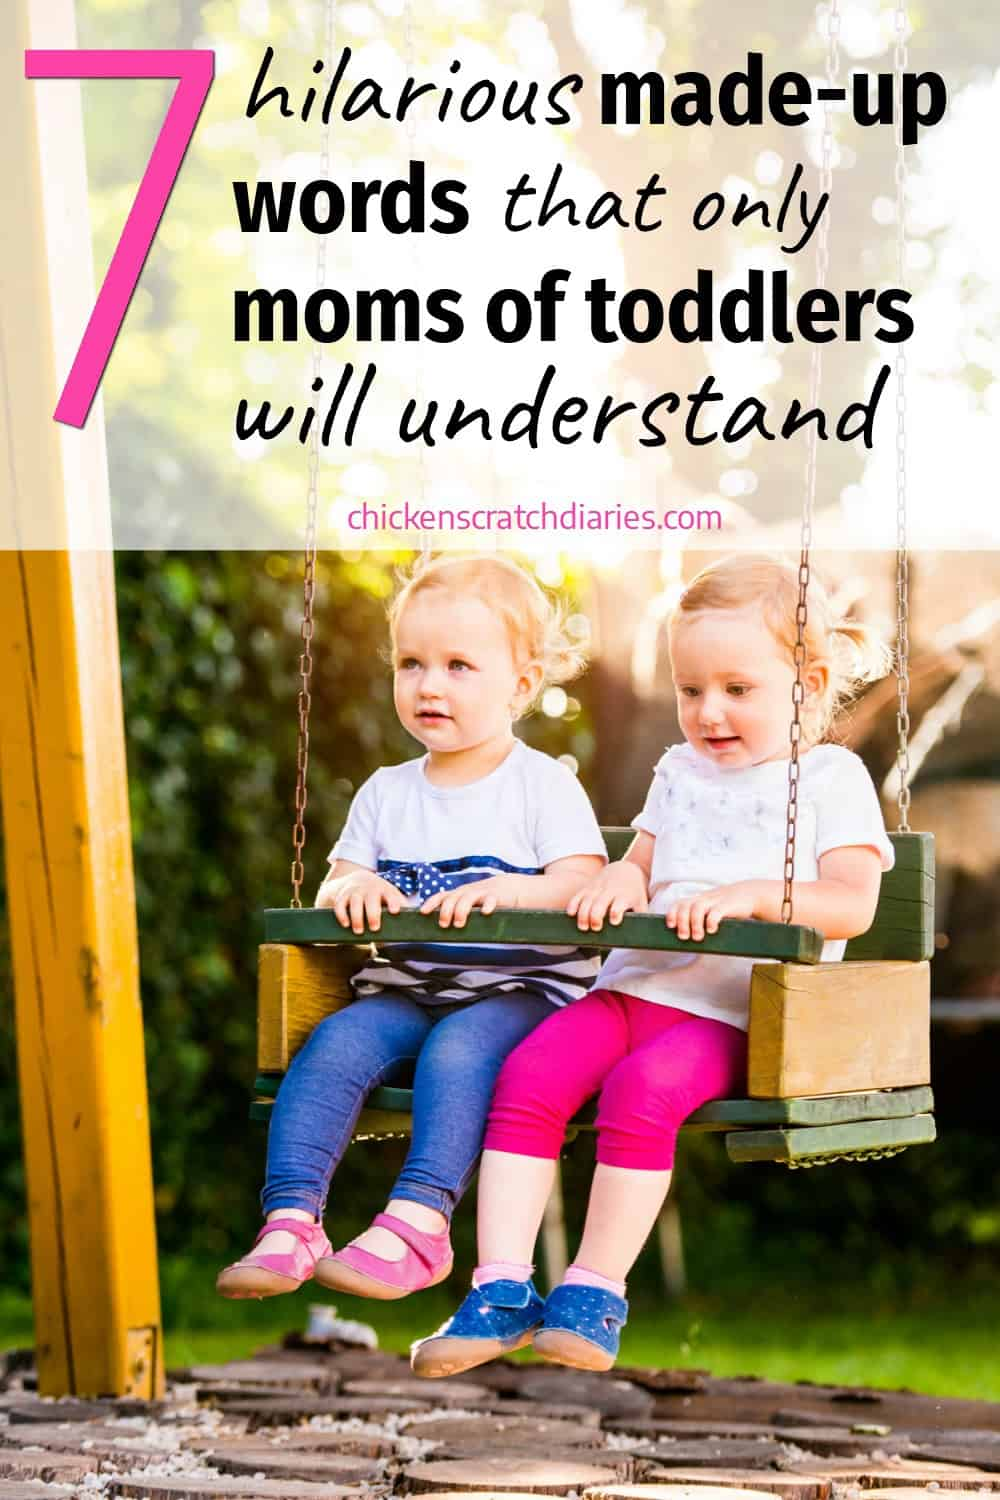 Mom humor that moms of toddlers can appreciate! #MomLife #Toddlers #MomHumor #Parenting #Funny